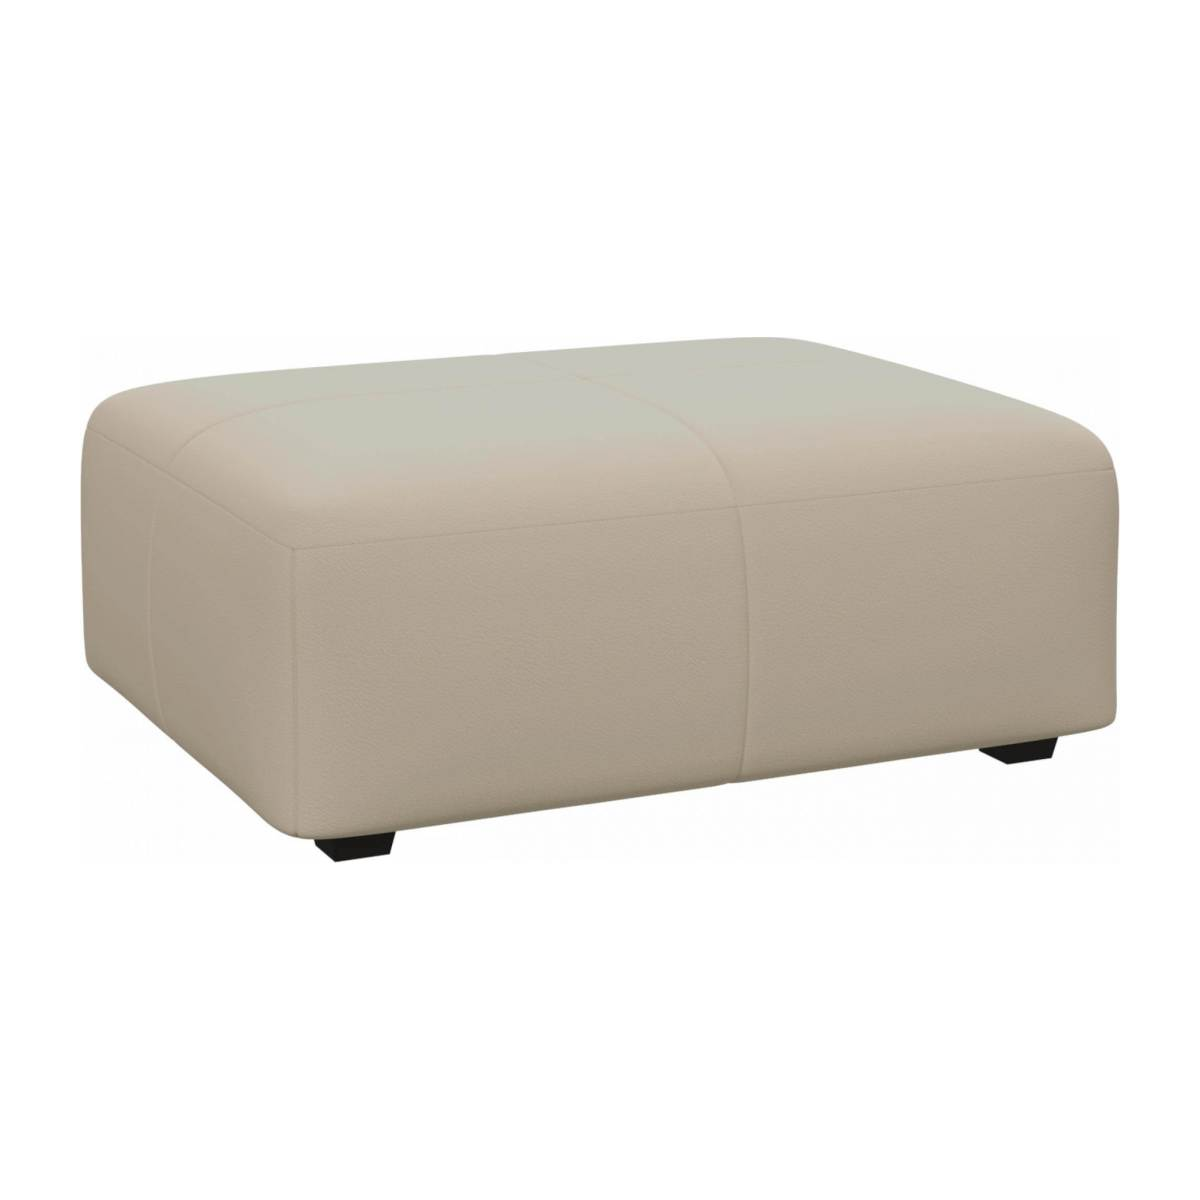 Footstool in Savoy semi-aniline leather, off white n°3